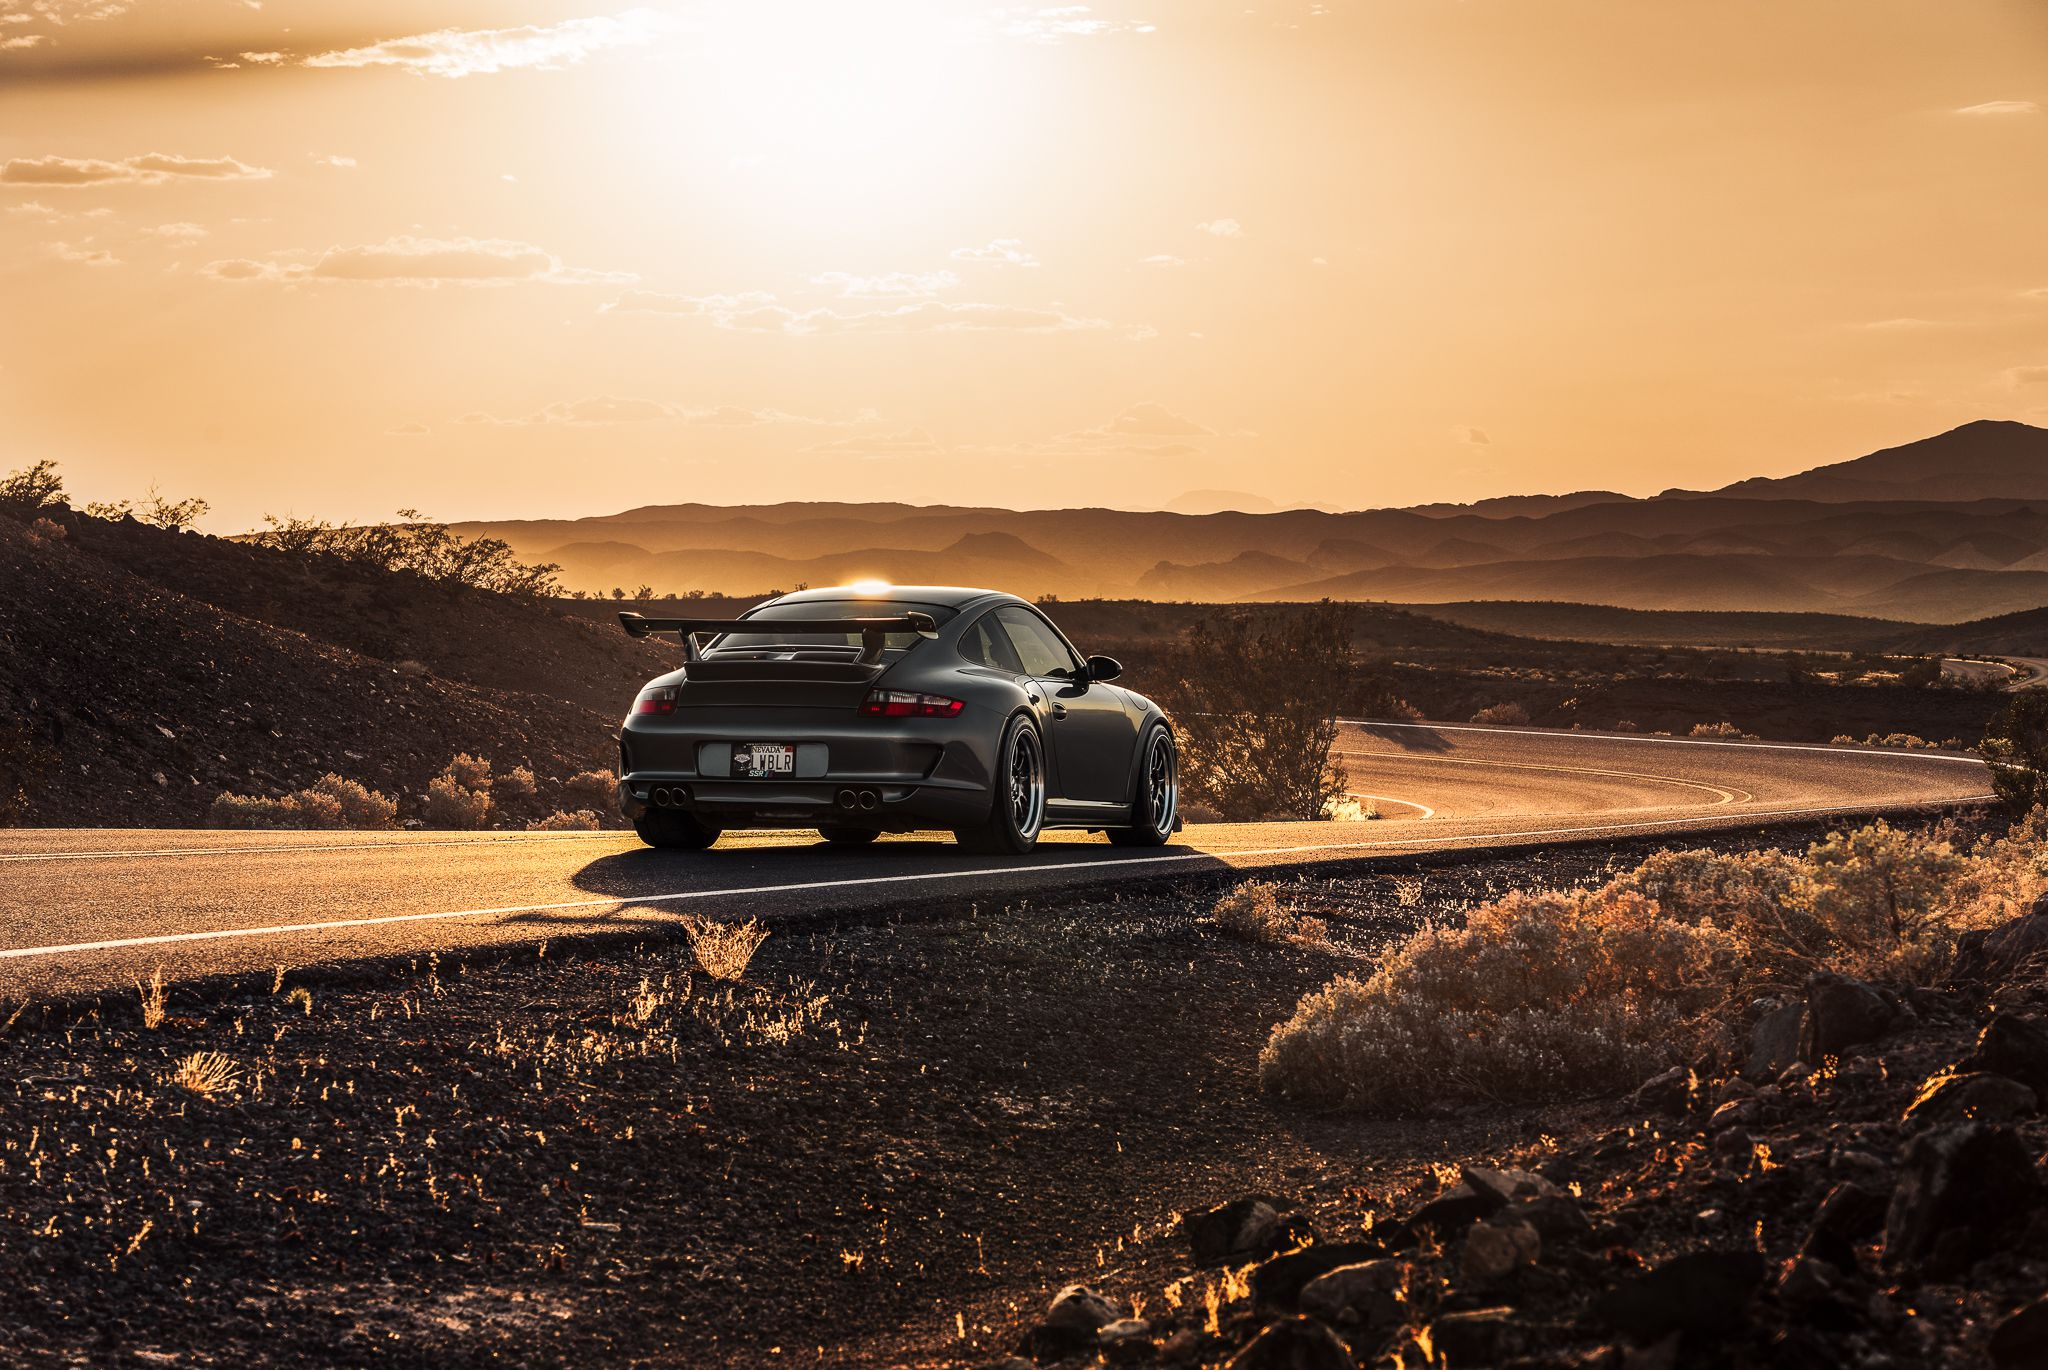 Porsche 997 at sunset